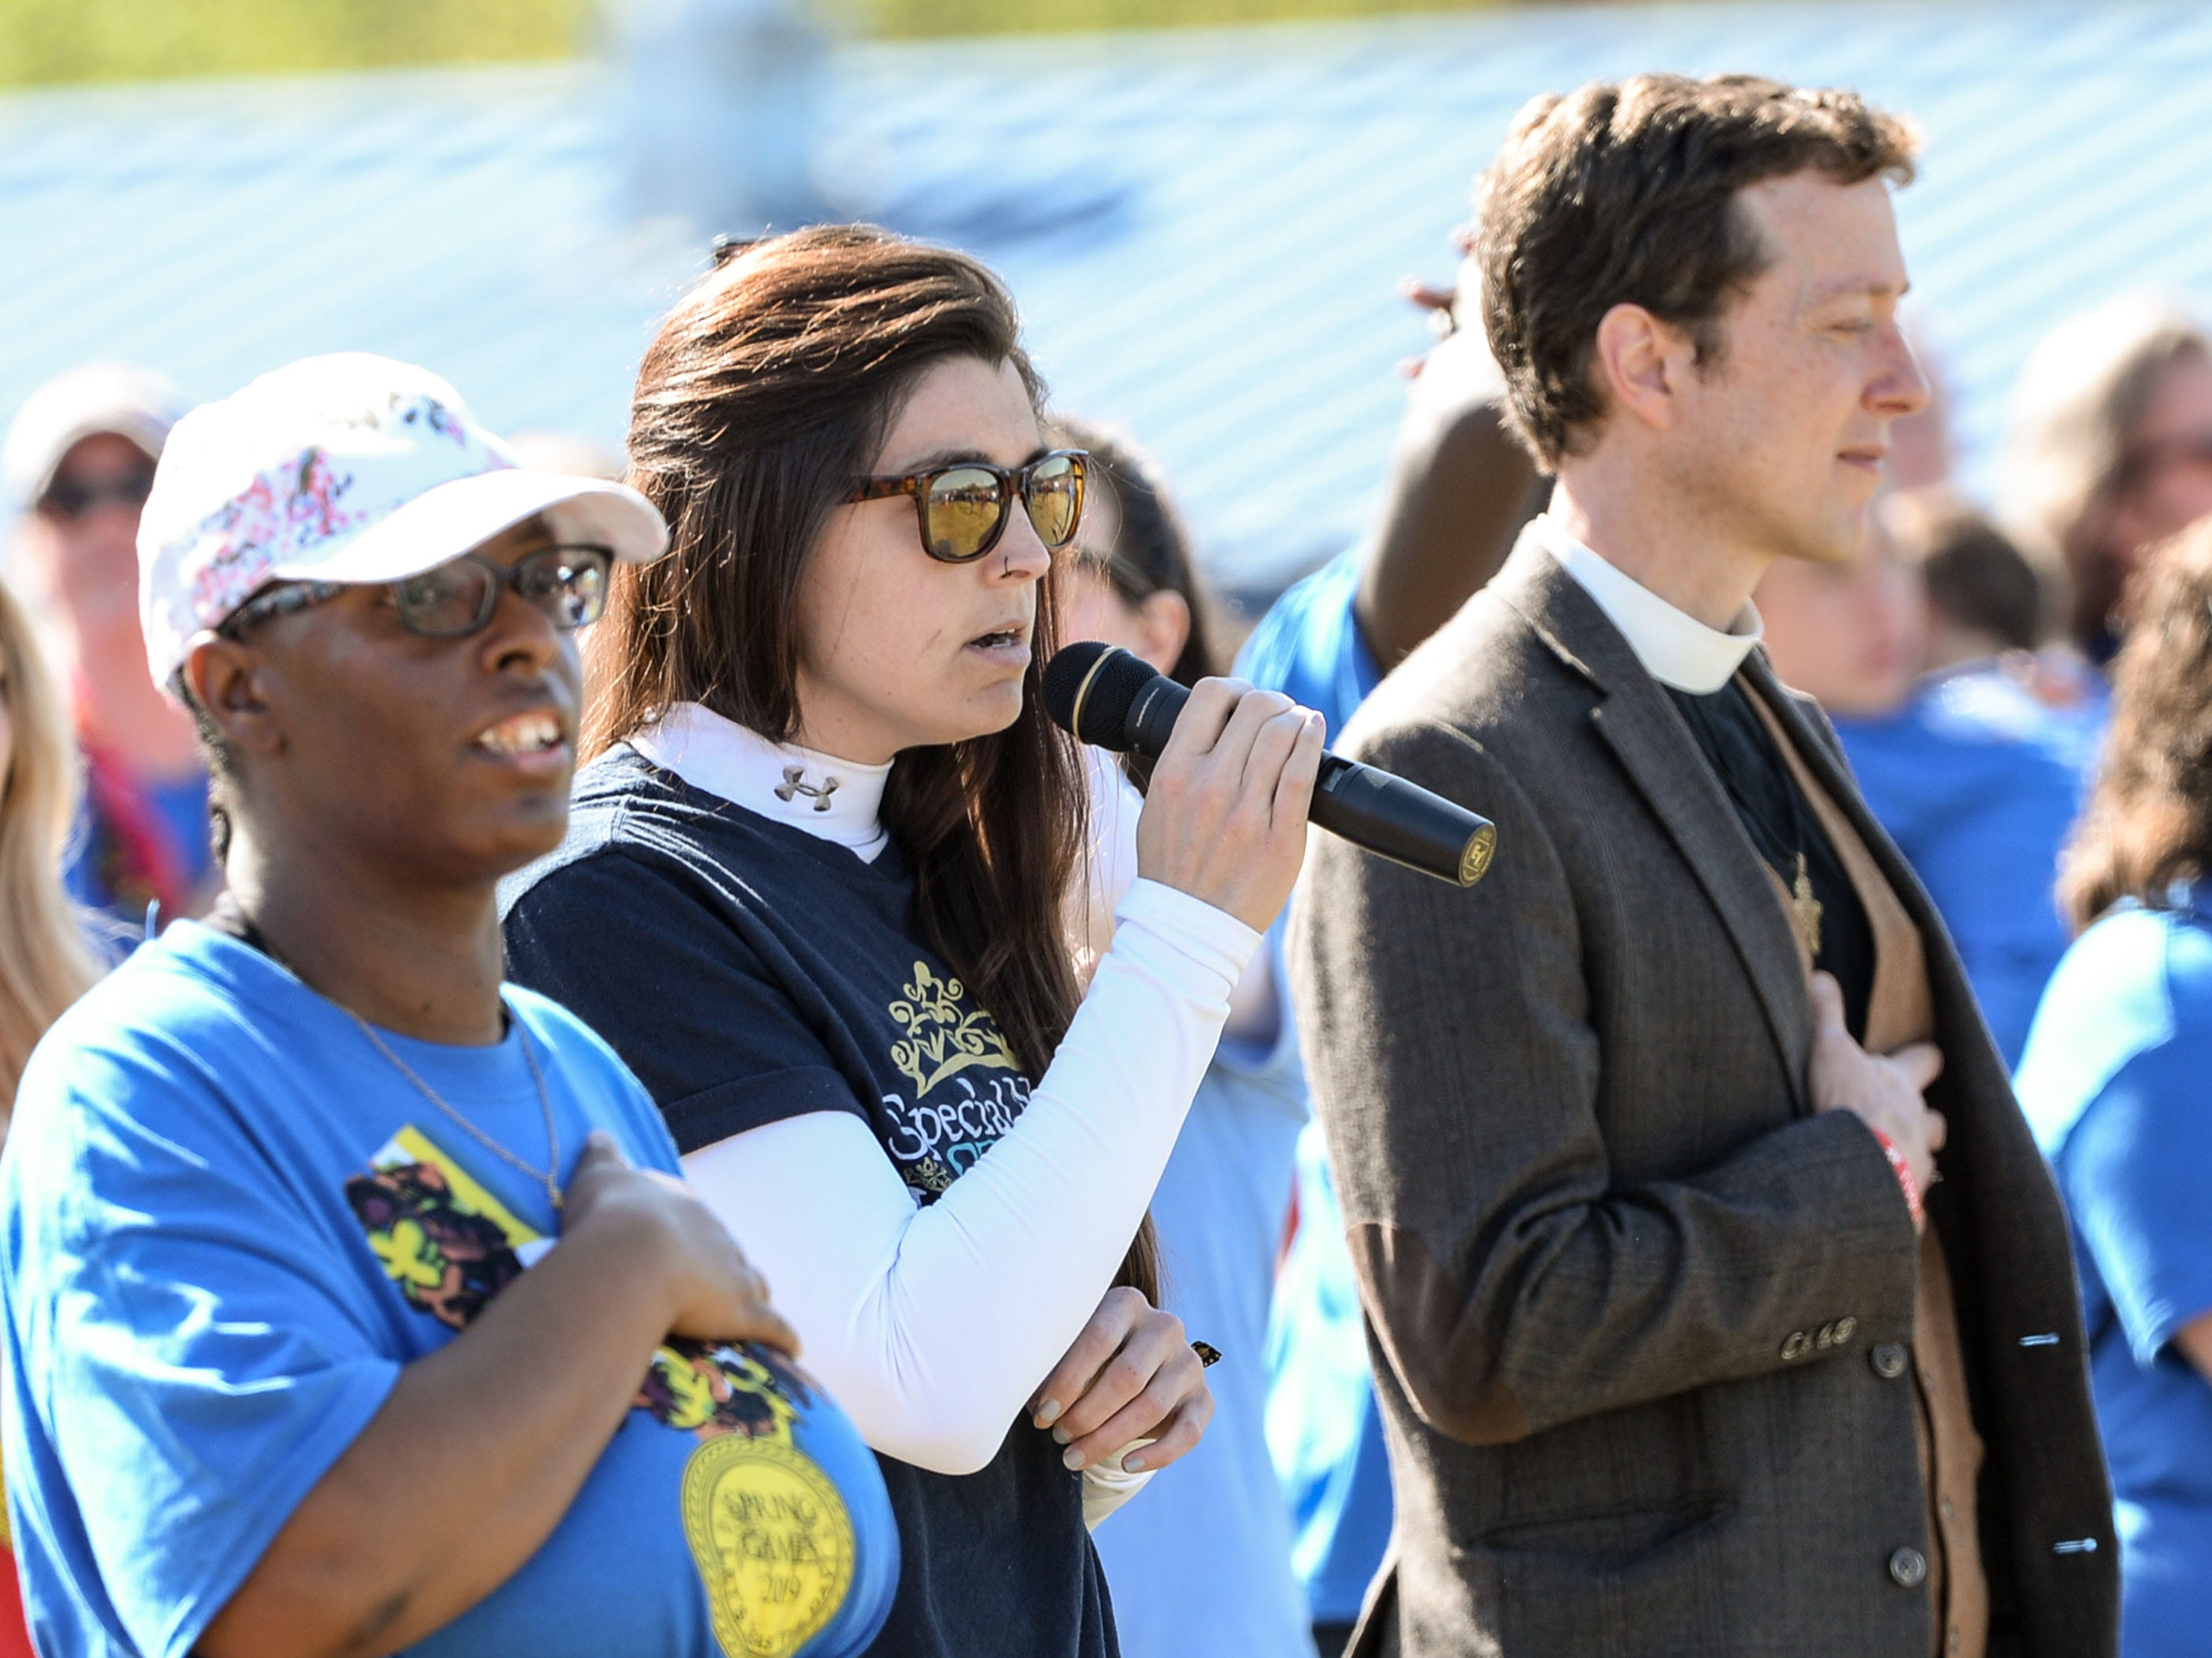 Lauren Ross, middle, of Freedom Fitness, sings the National Anthem during the Special Olympics South Carolina Area 14 Spring Games at Marlee Gambrell field at Belton-Honea Path High School Wednesday.